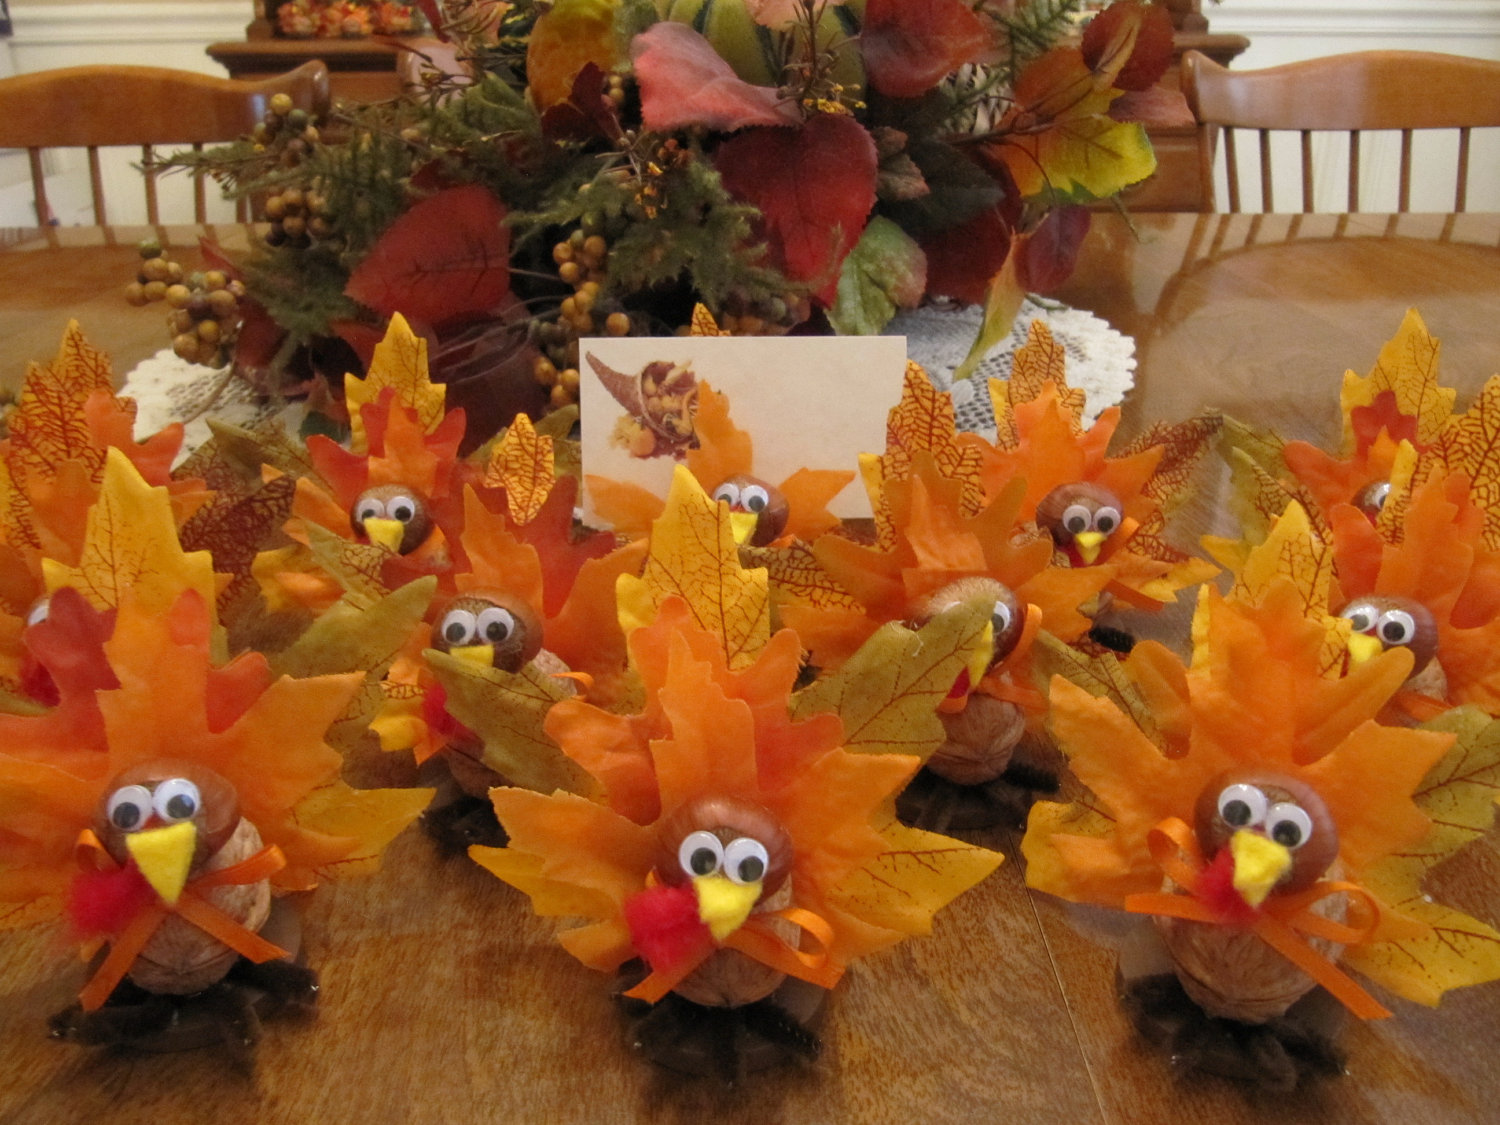 furniture-thanksgiving-table-arrangements-stylish-decorations-inspiring-ideas-design.jpg